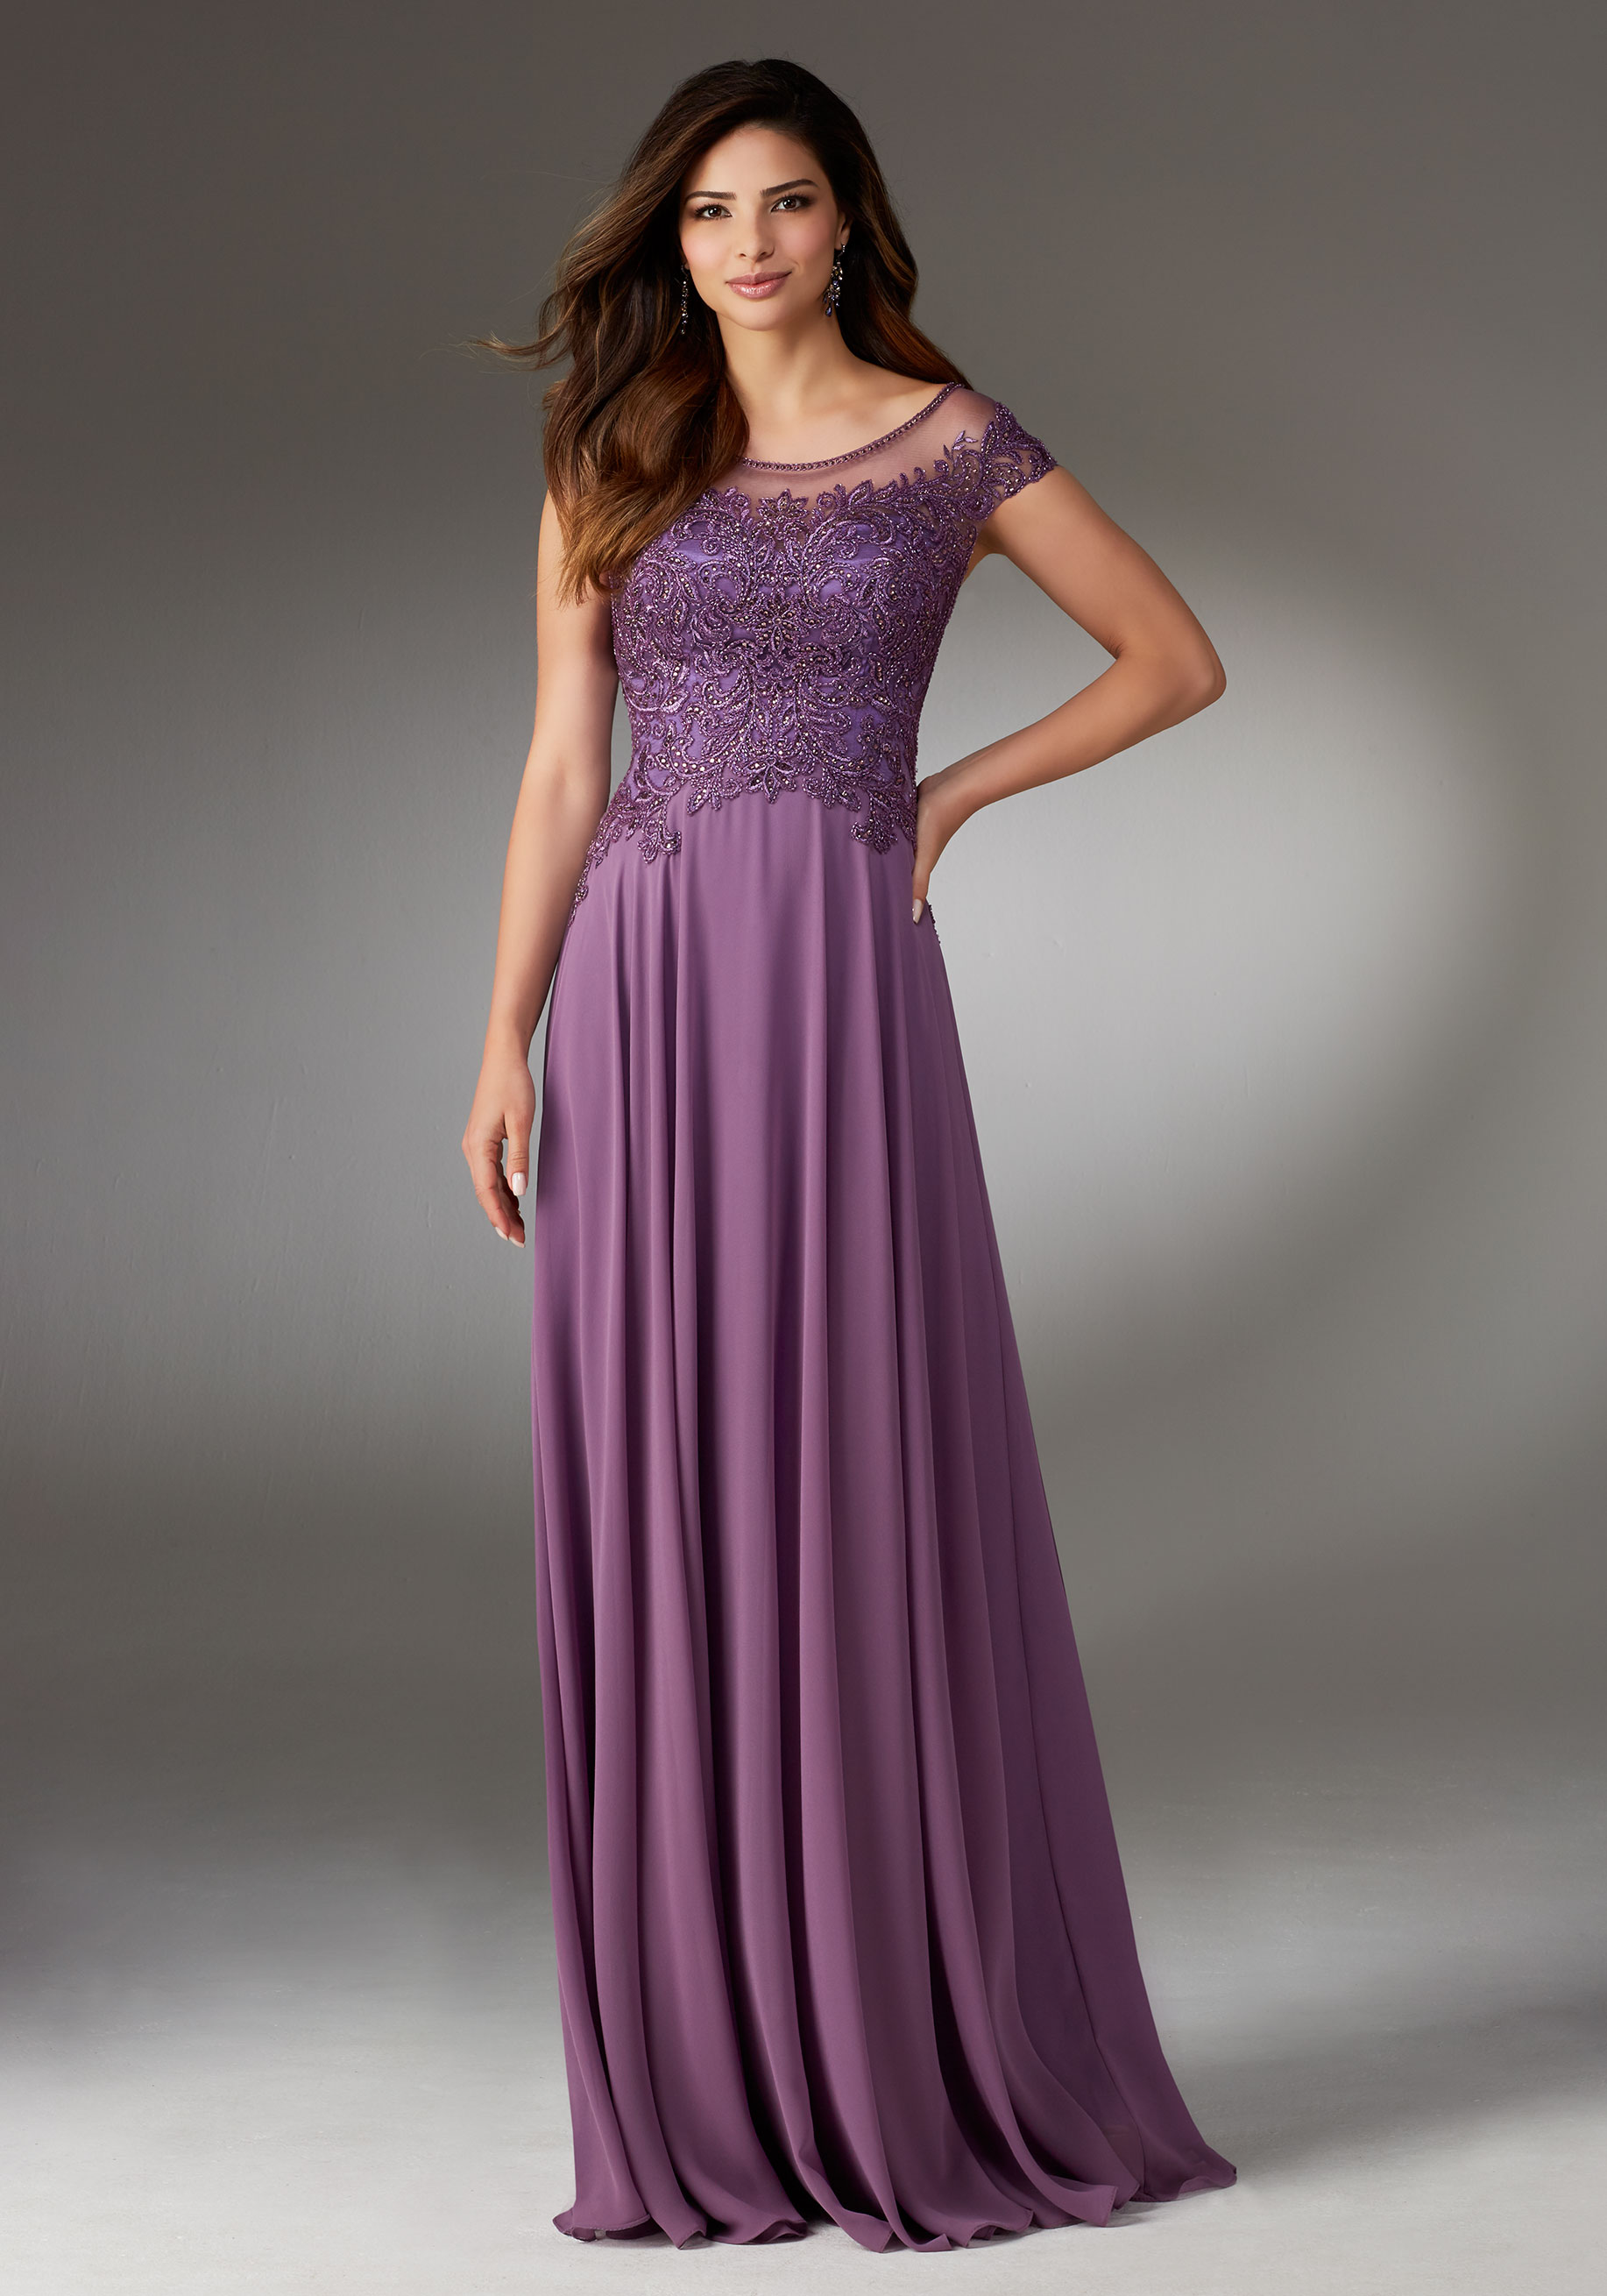 evening dresses and gowns photo - 1